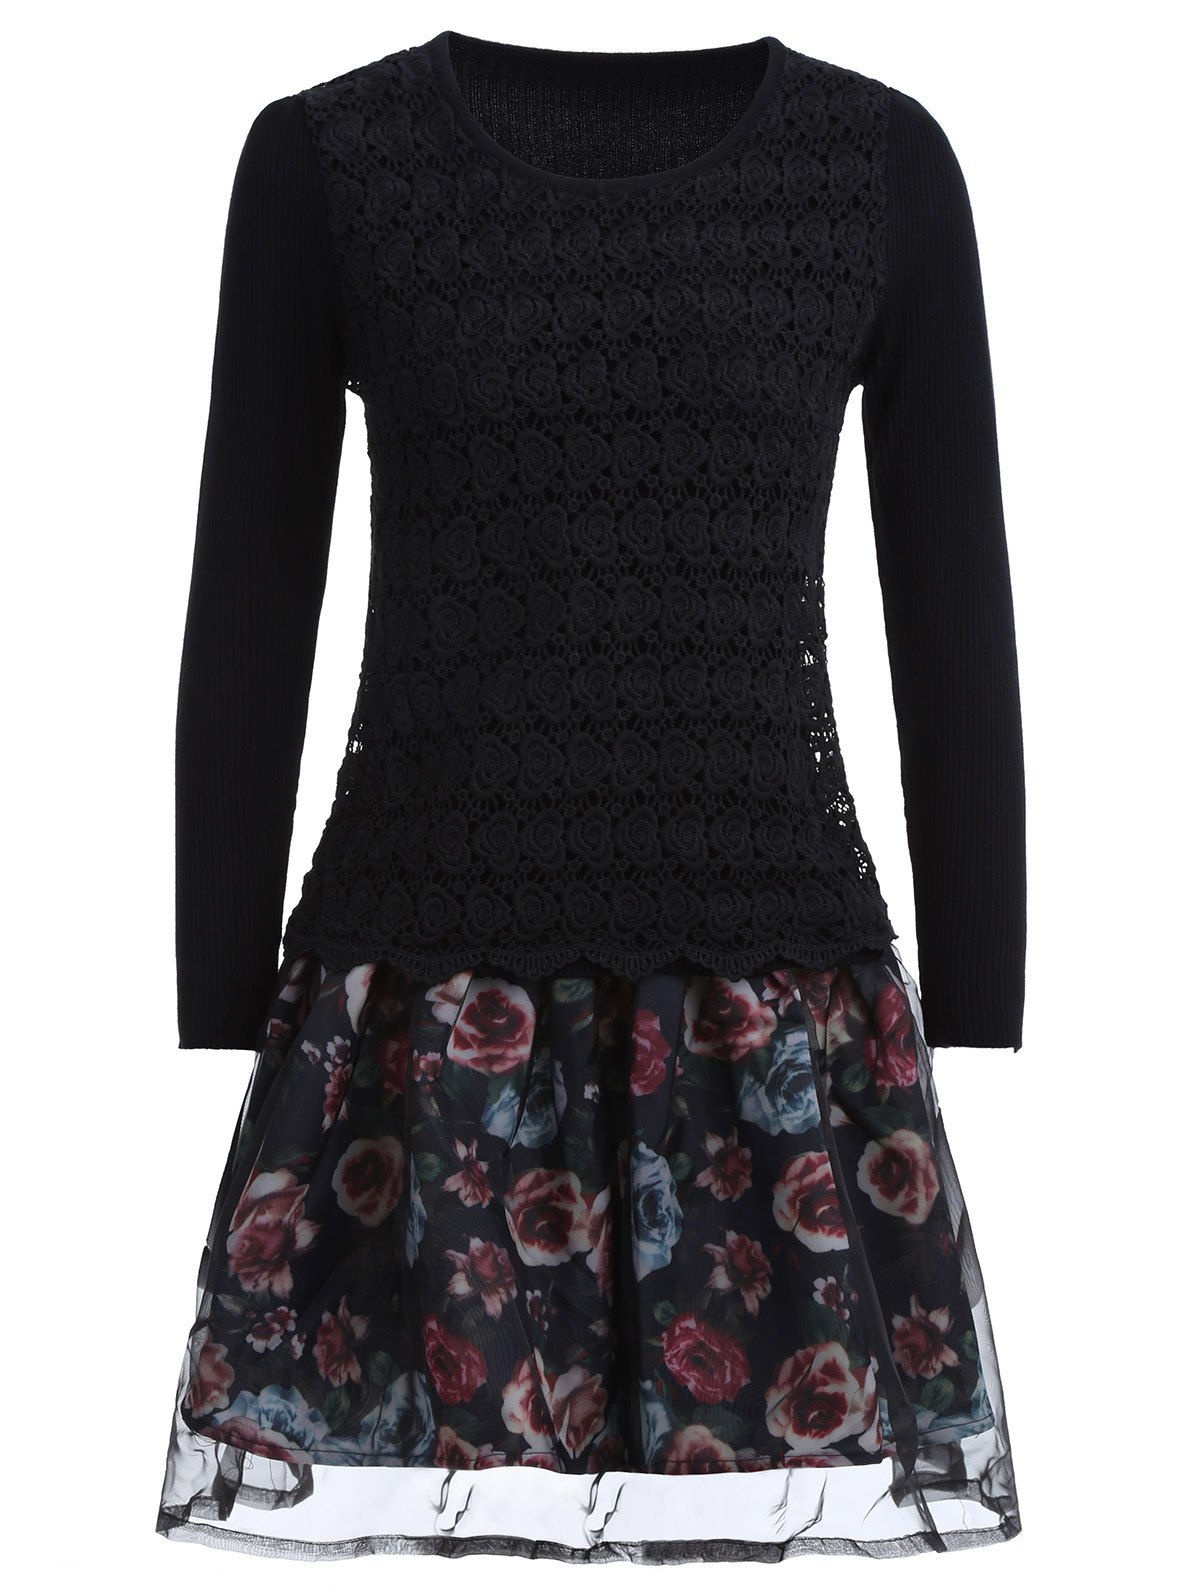 Organza Spliced Floral Layered Sweater Skater Dress - BLACK ONE SIZE